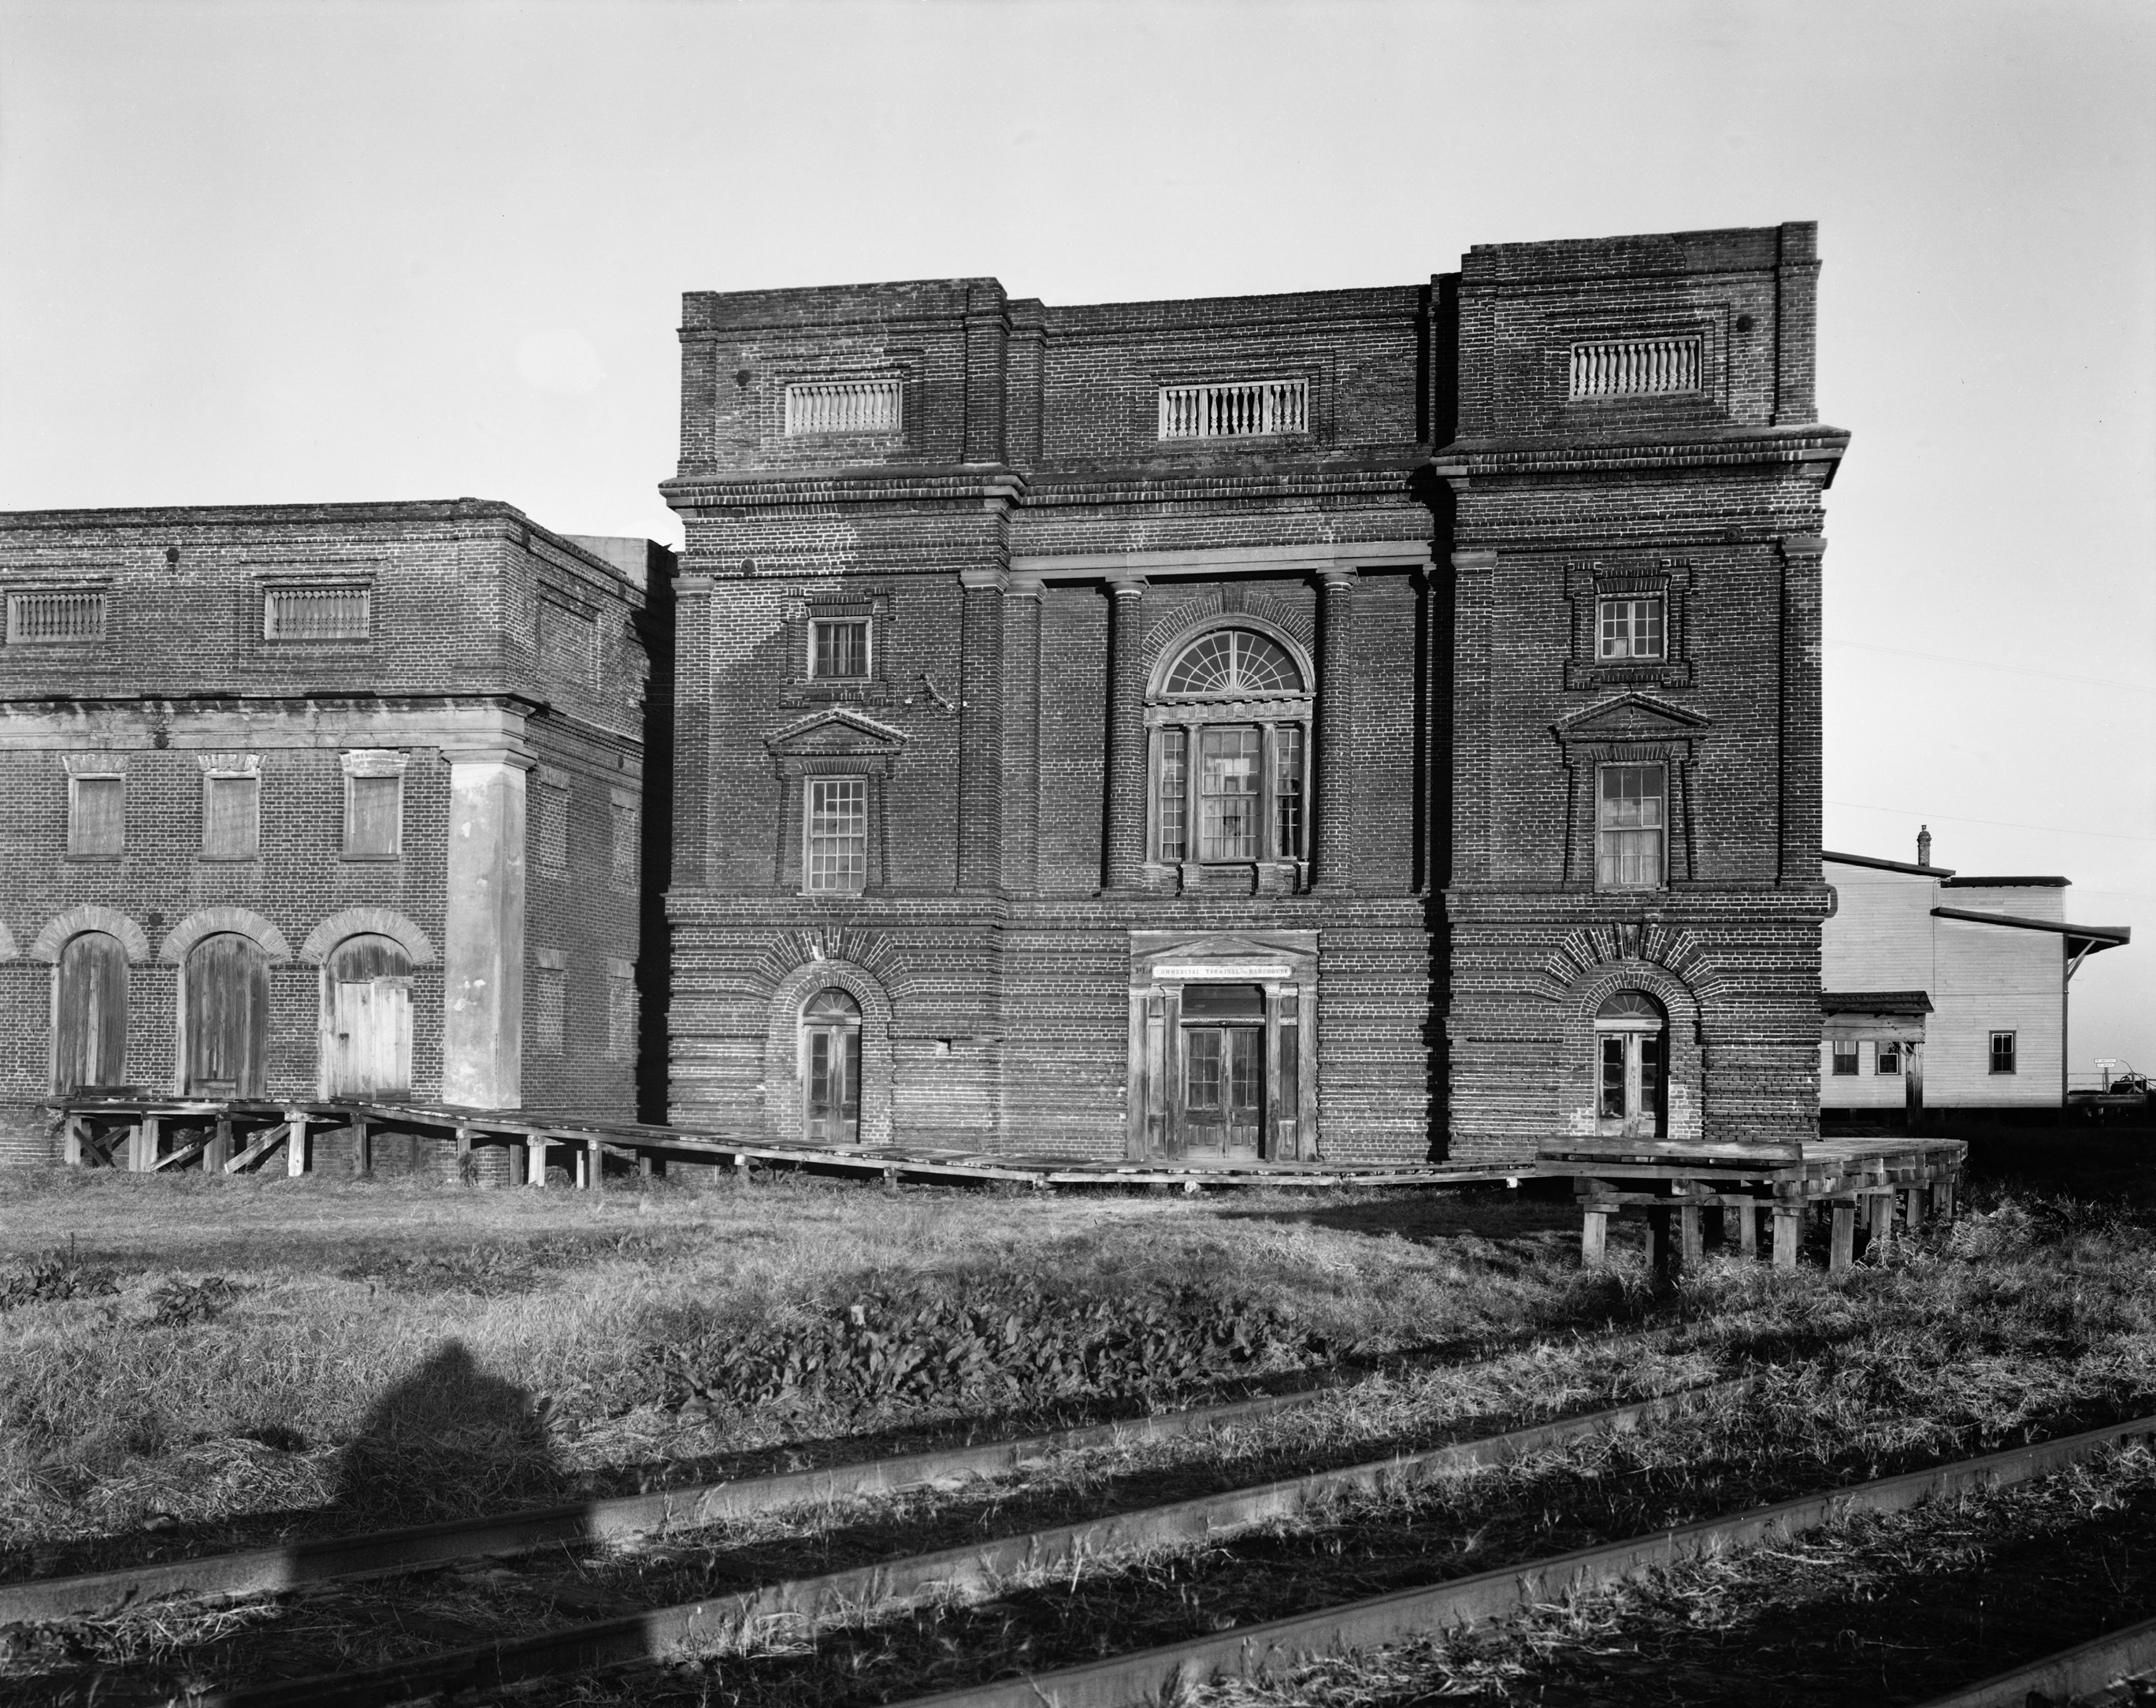 Bennett's wealth allowed him to create a building for milling rice that was both utilitarian and a masterpiece blending Classical Revival and Italian Renaissance styles. Bennett Rice Mill, circa 1937,  by Frances Benjamin Johnston